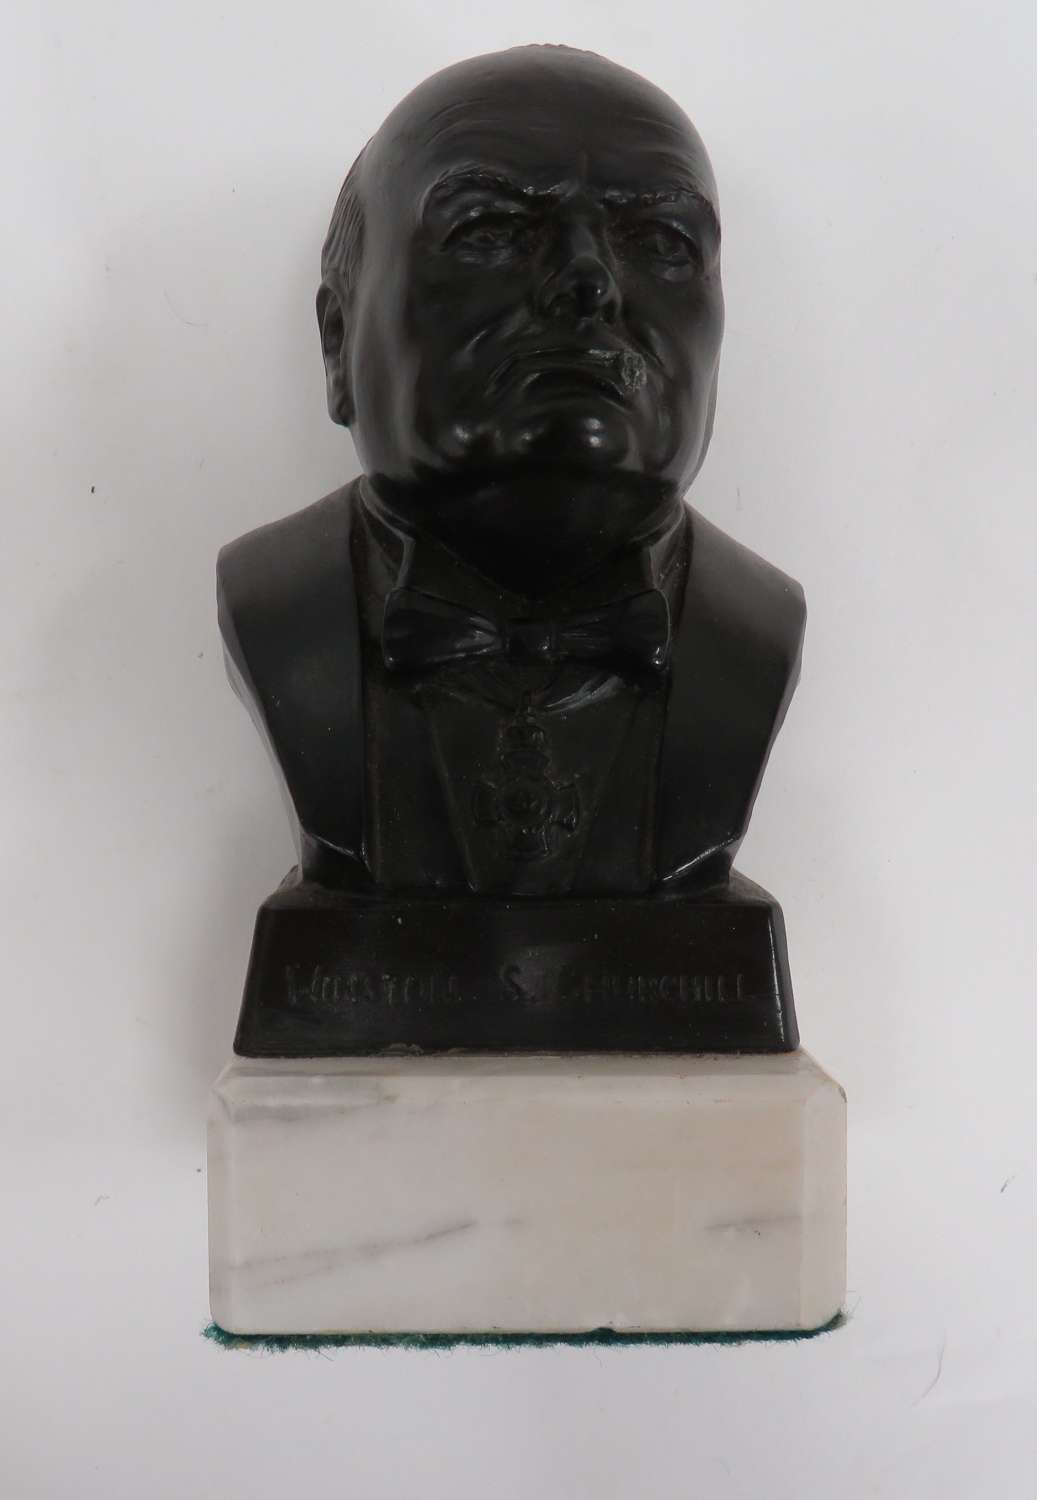 WW 2 Winston Churchill Desk Ornament